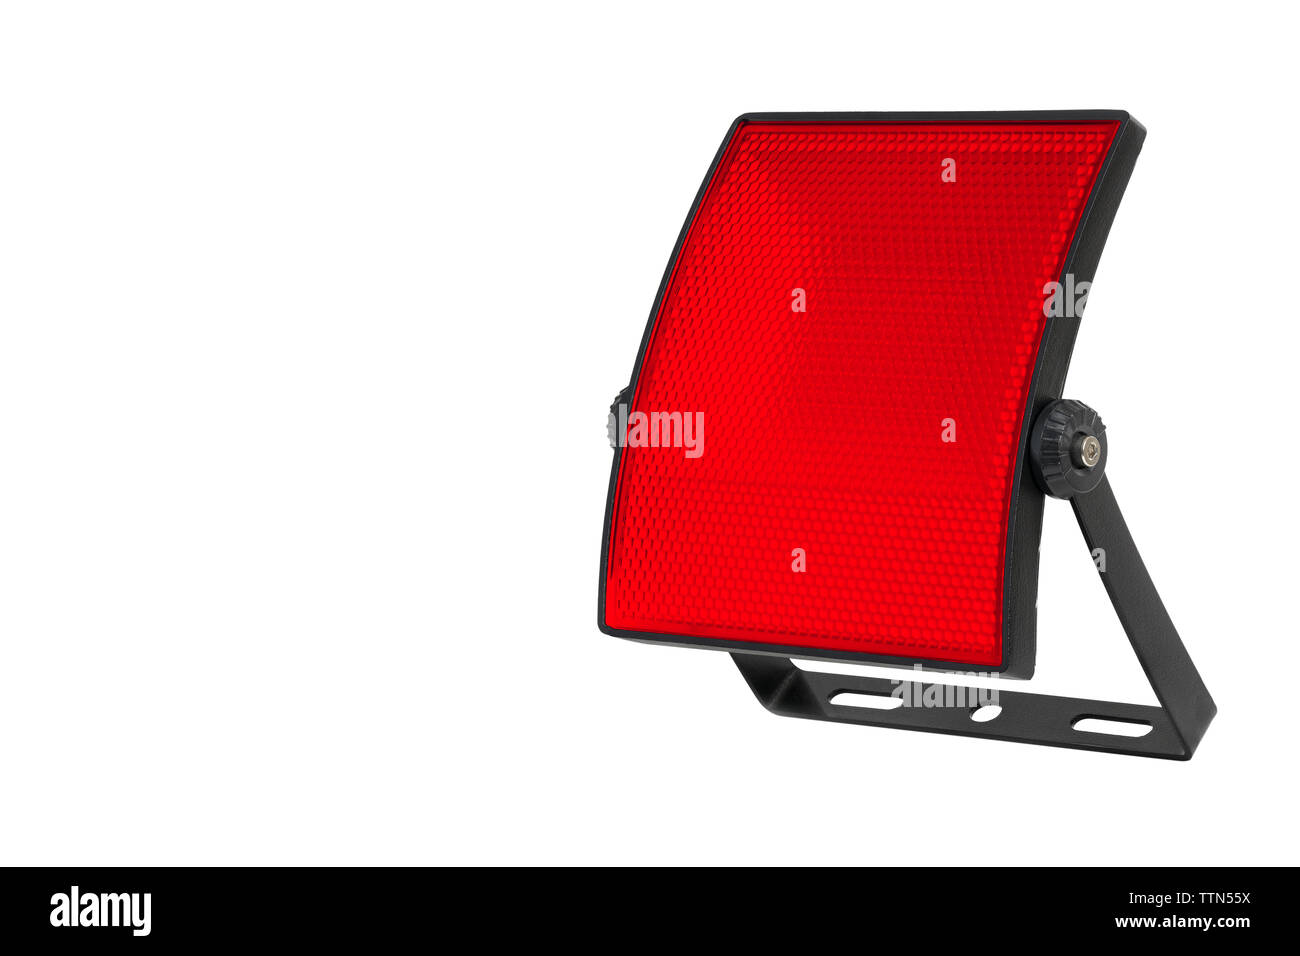 Curved LED spotlight and mounting bracket on a white background. Red diffuser with small cells. A high resolution. - Stock Image